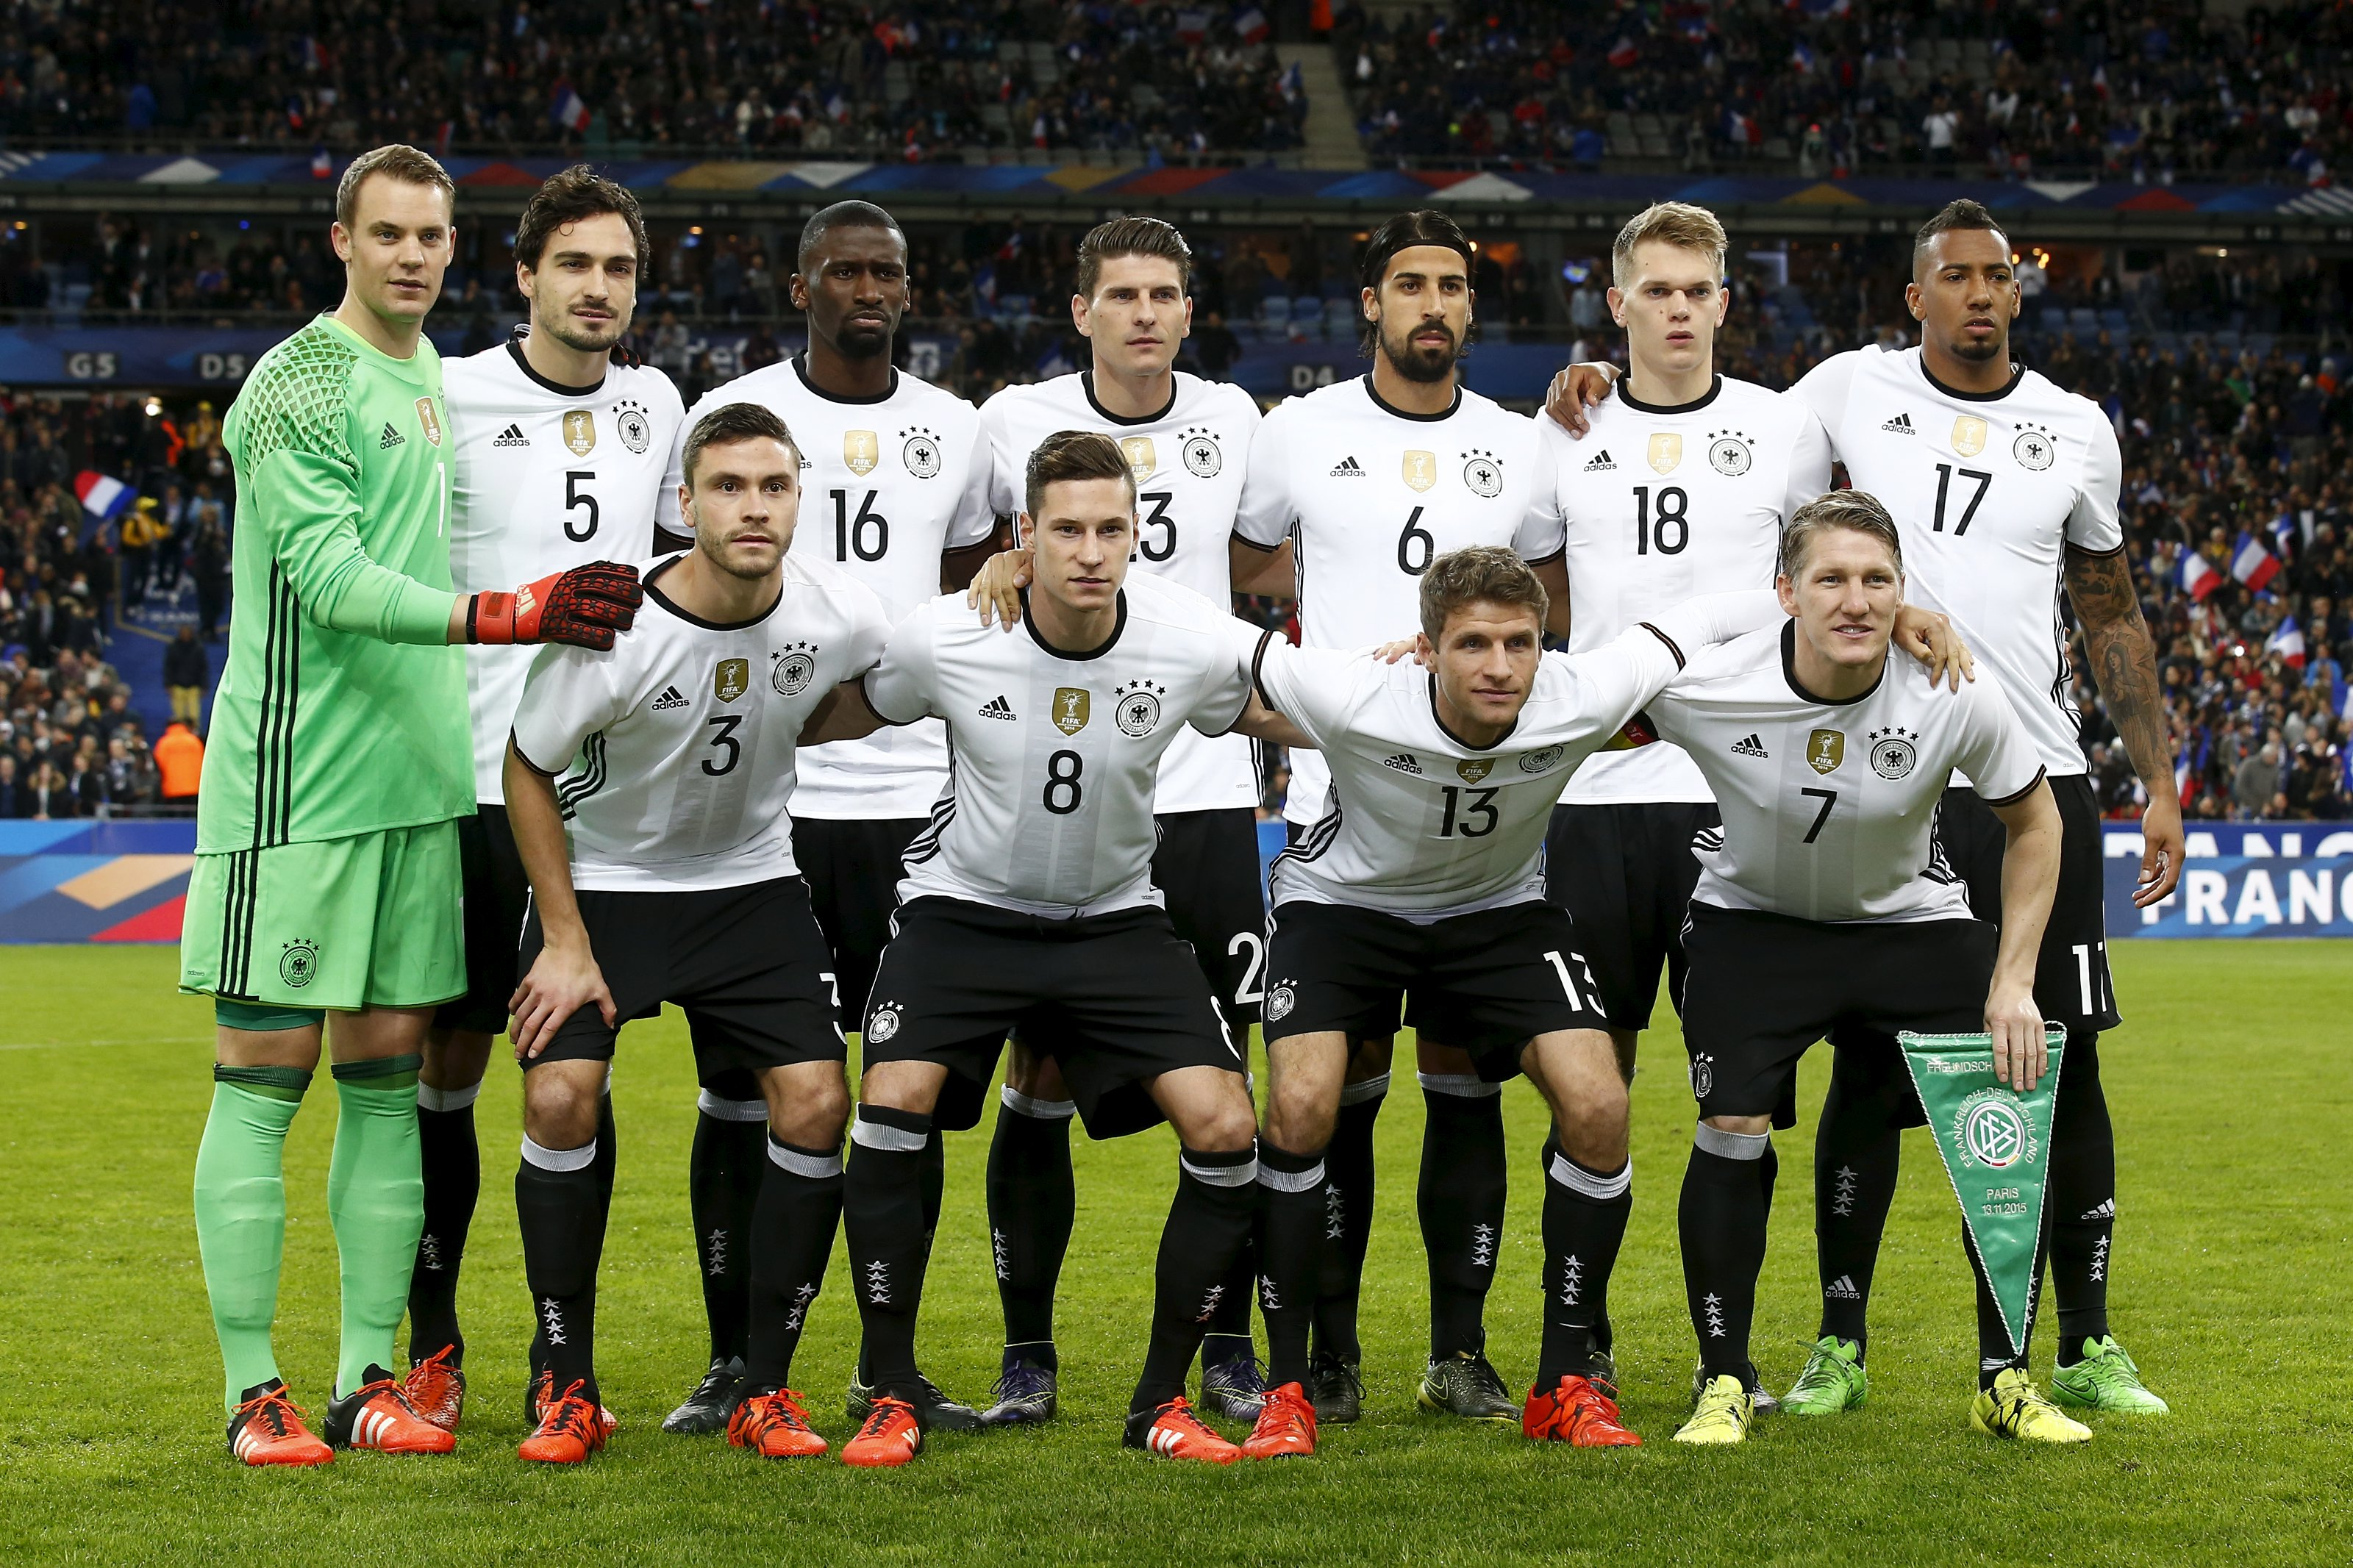 Germany players pose for a photograph prior to their International friendly football match against France at Stade de France Stadium on November 13, 2015. Photo: Reuters